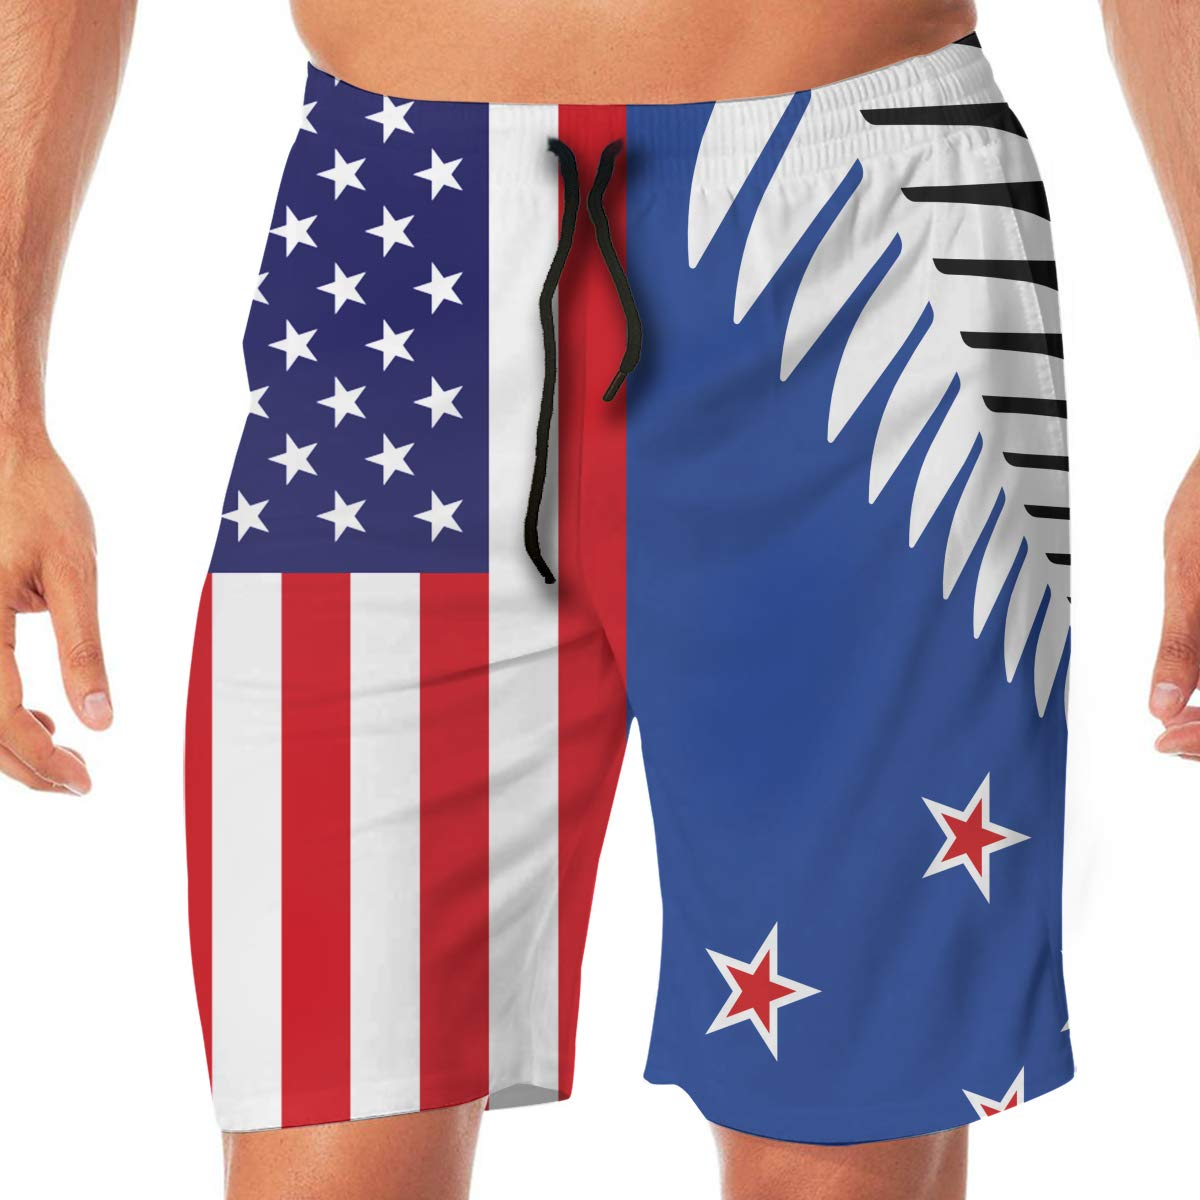 HZamora/_H Men Blue Space Summer Breathable Quick-Drying Swim Trunks Beach Shorts Cargo Shorts